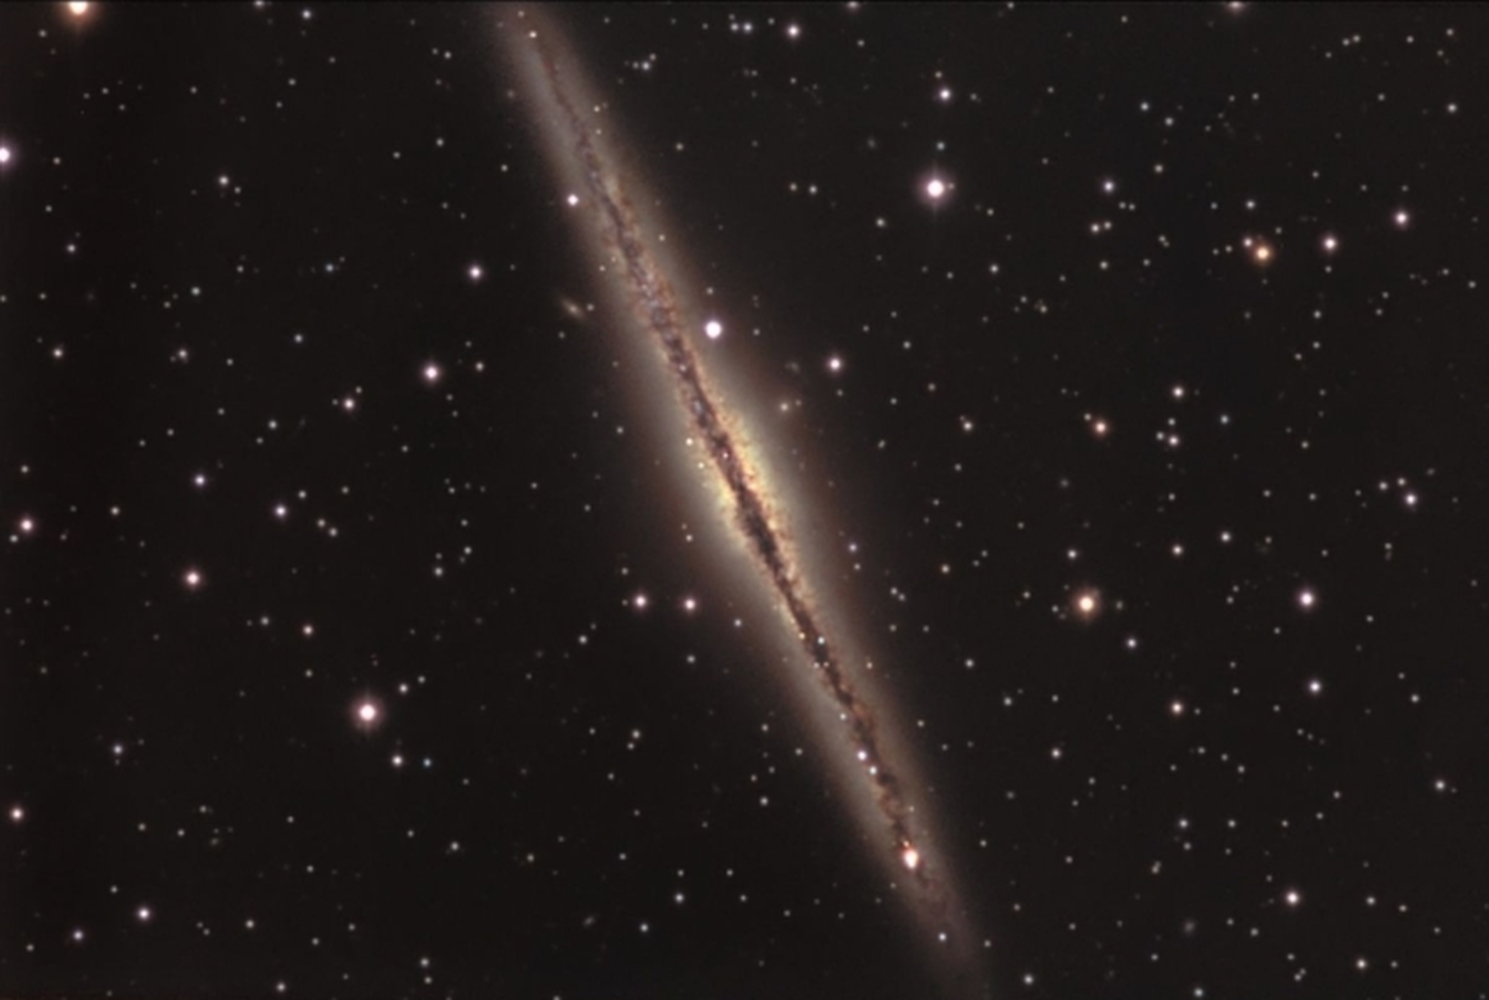 NGC 891 from BMV Observatories